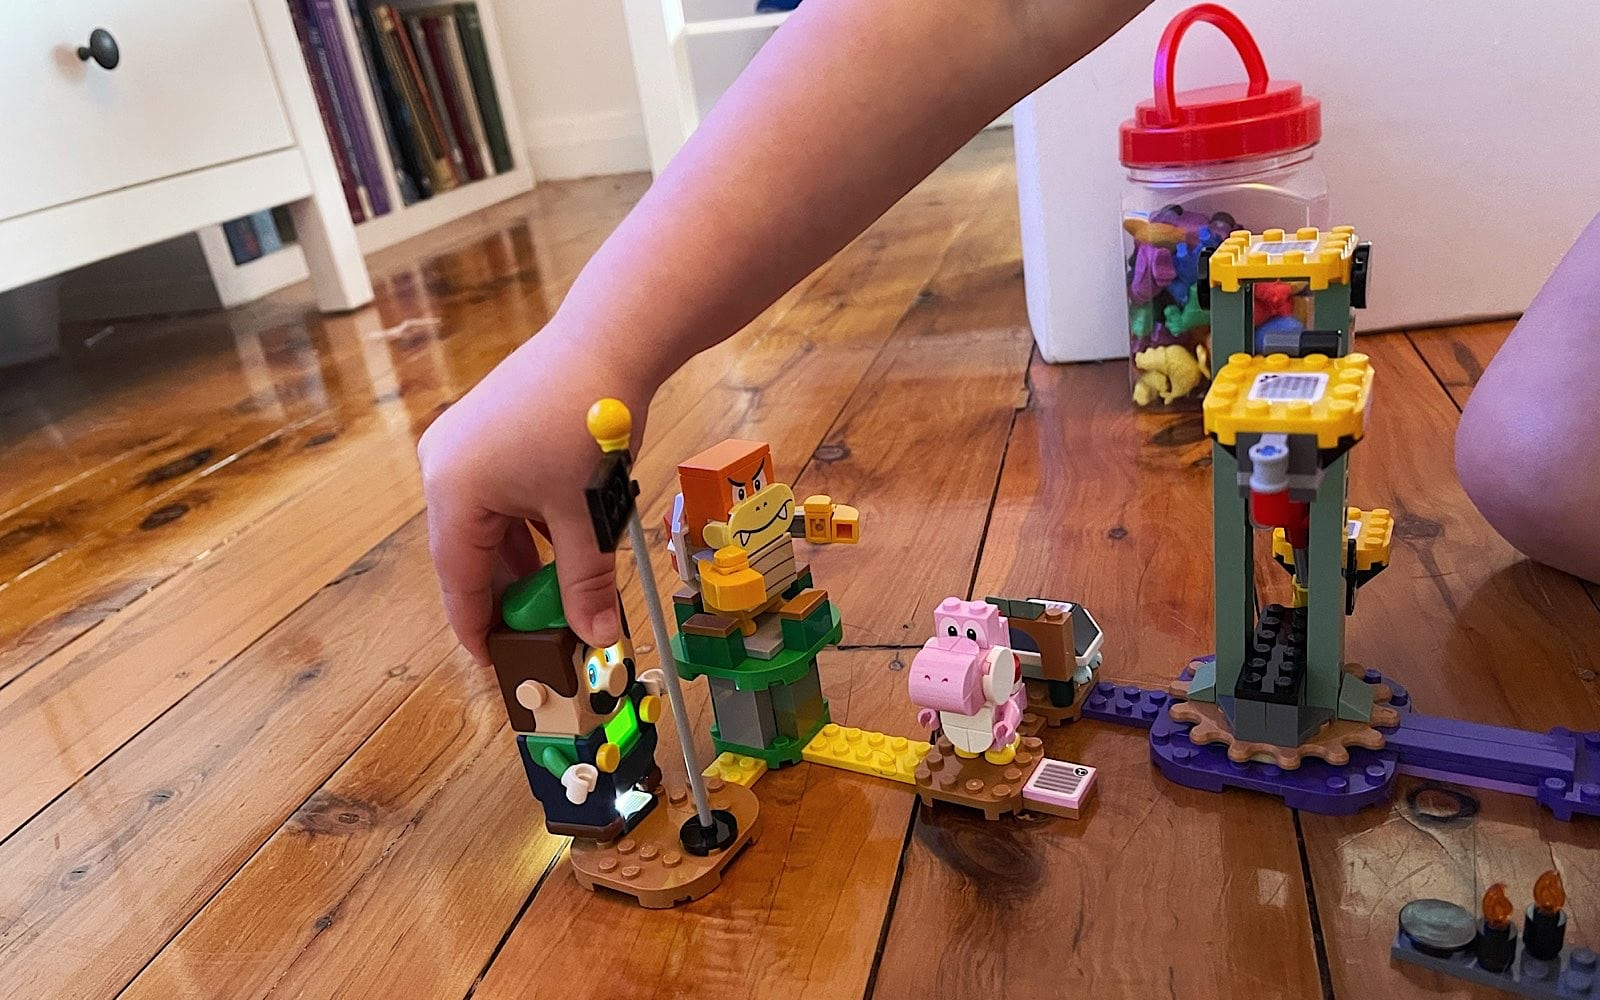 Playing with the Lego version of Mario Bros.